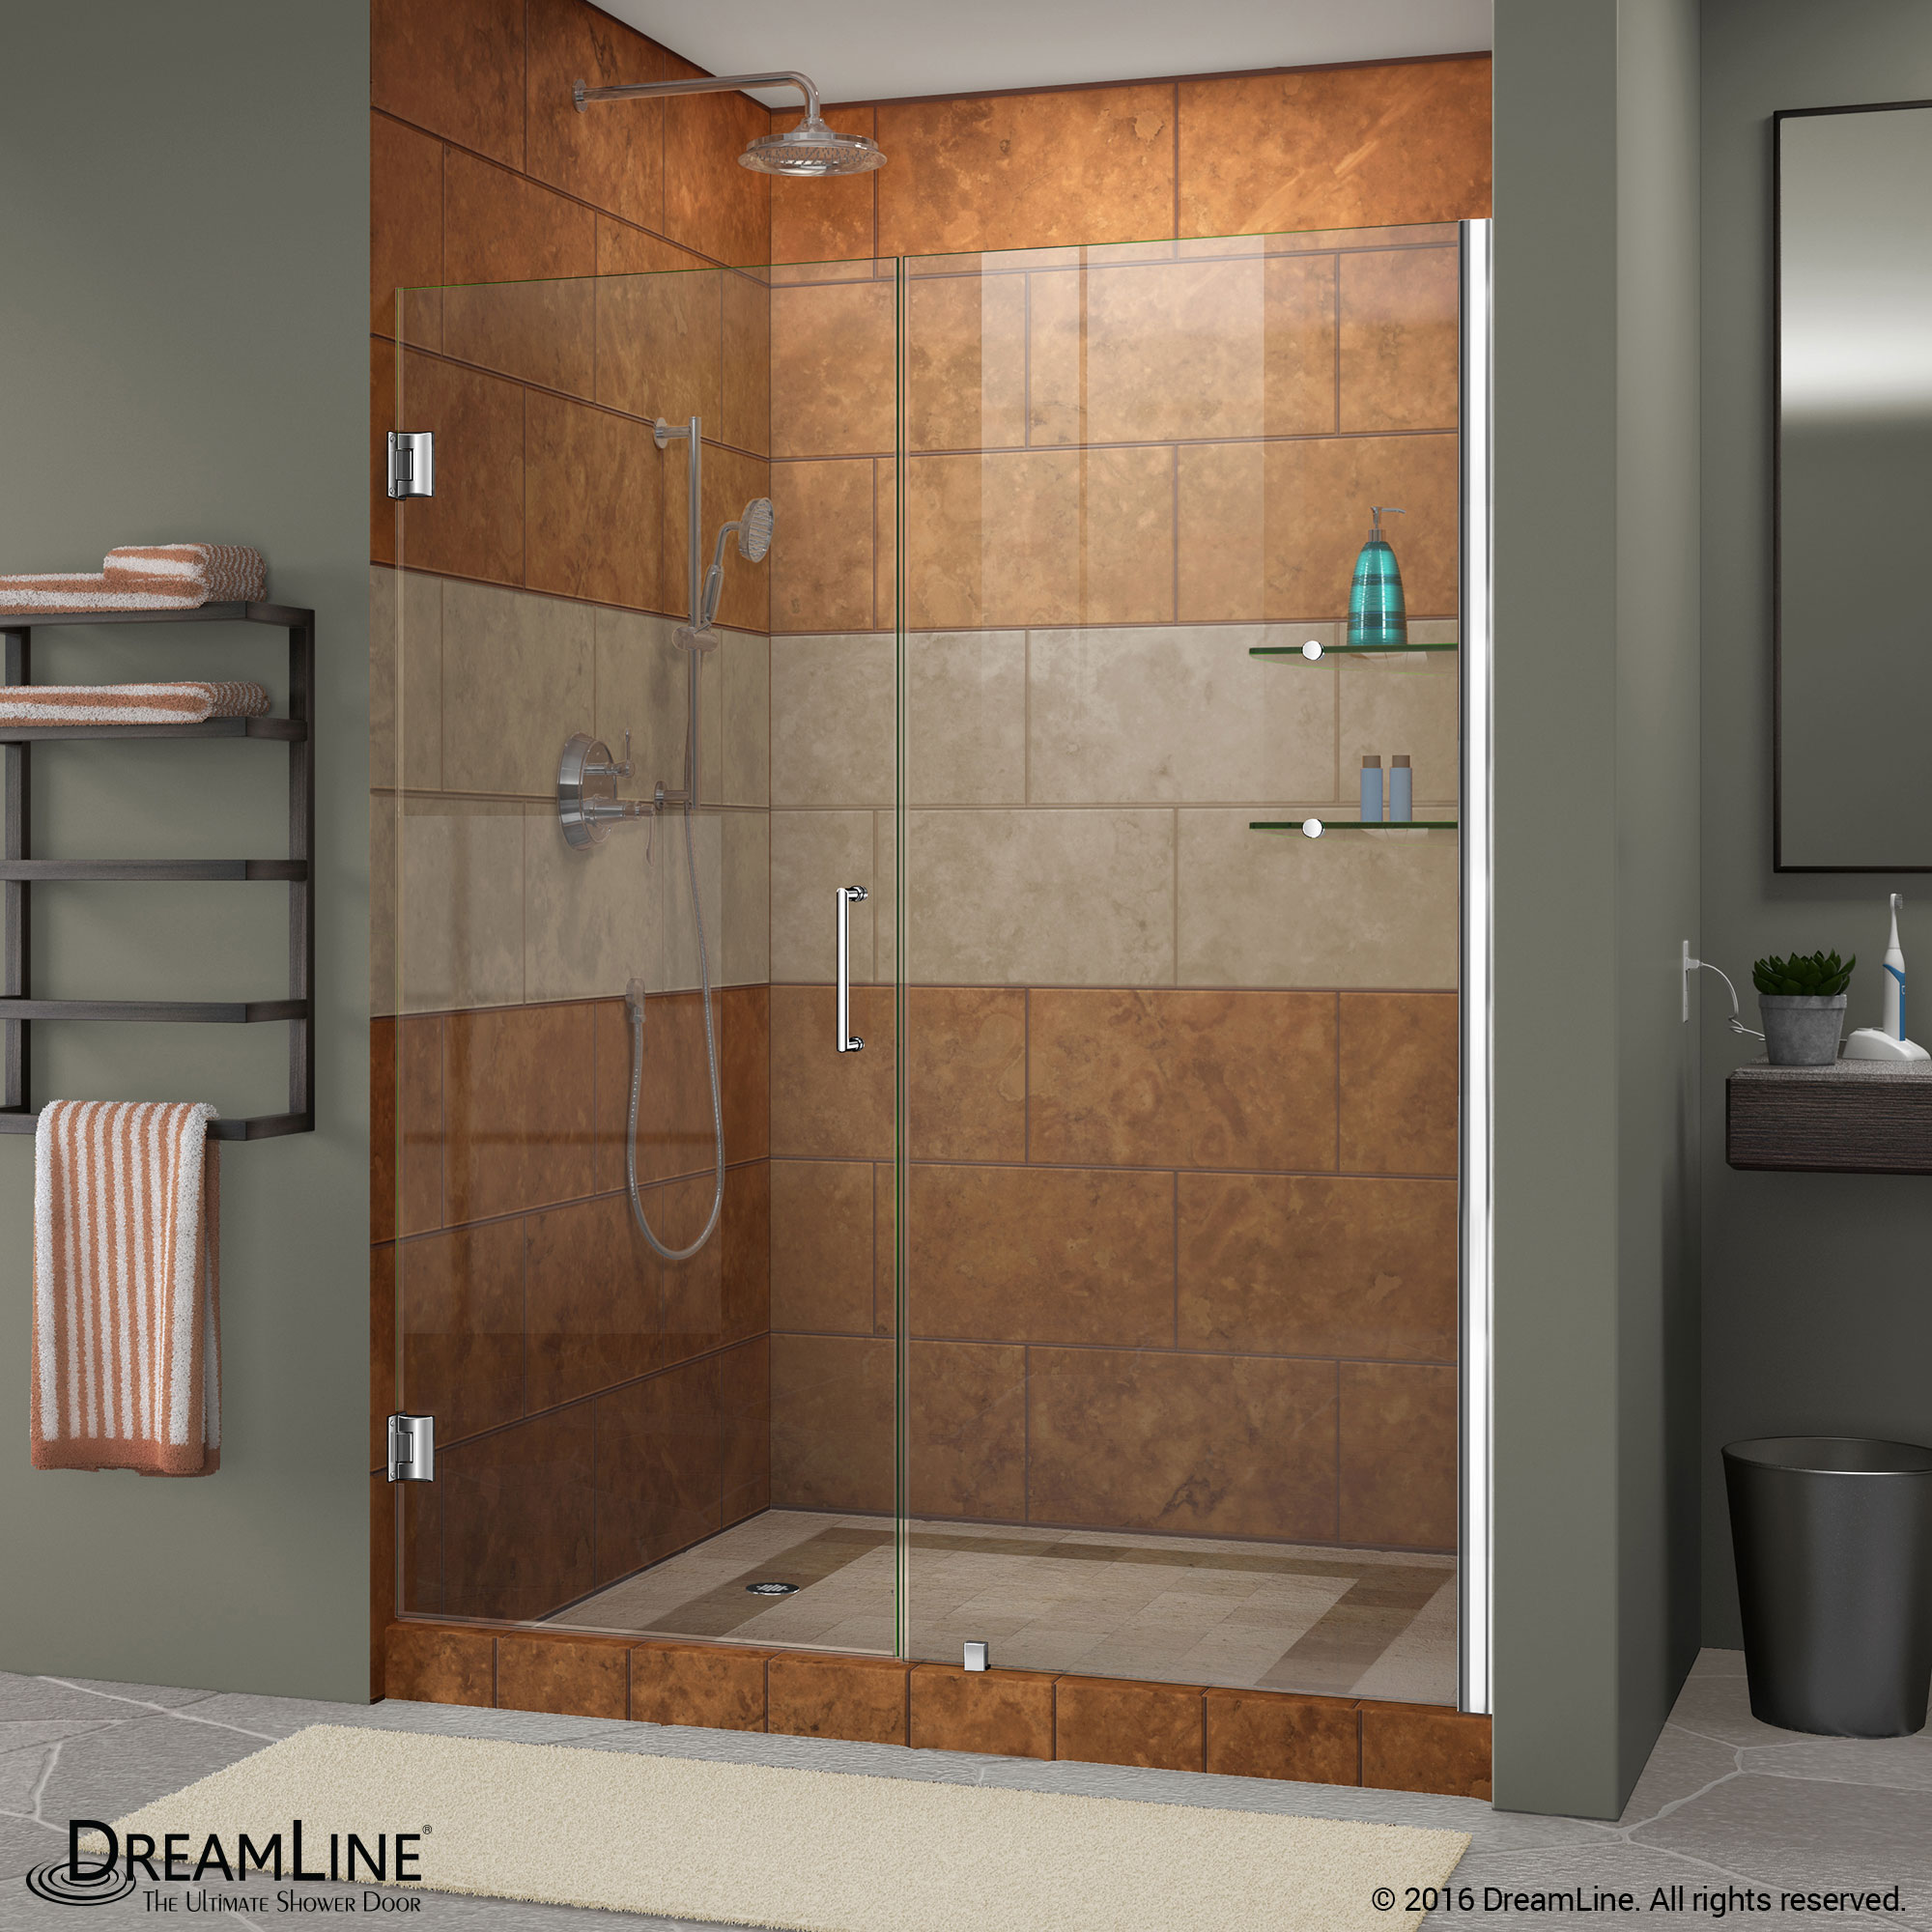 DreamLine Unidoor Min 47 in. to Max 48 in. Frameless Hinged Shower ...